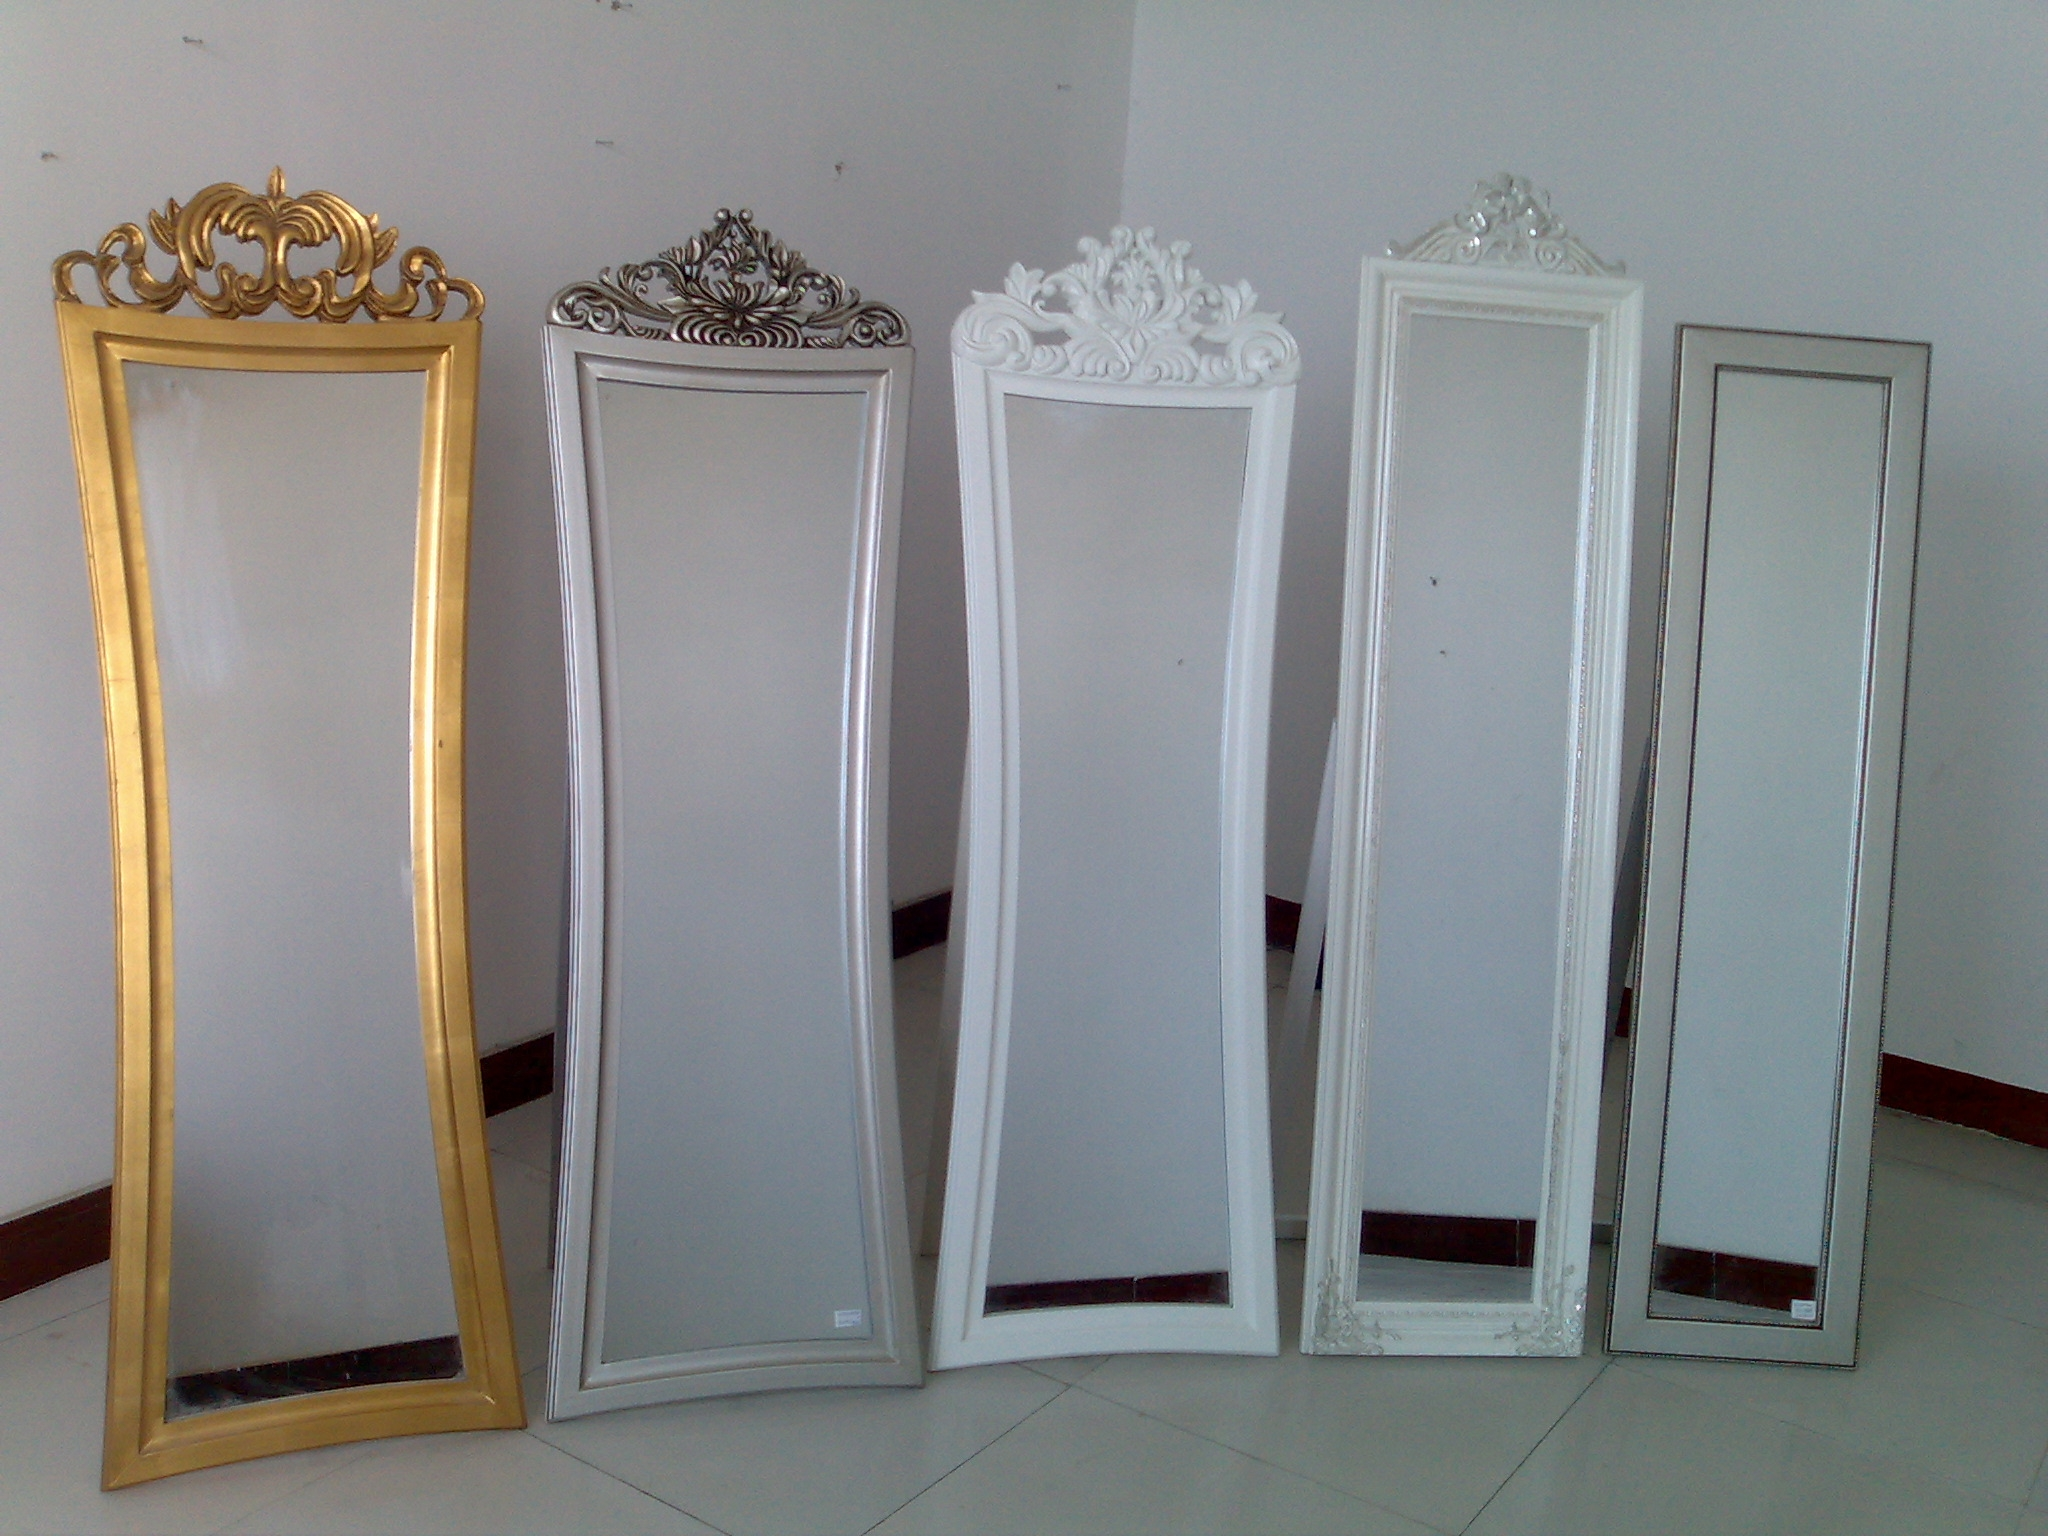 Wooden Free Standing Mirrorwood Cheval Mirrorwood Dressing Within Cheval Free Standing Mirror (Image 15 of 15)